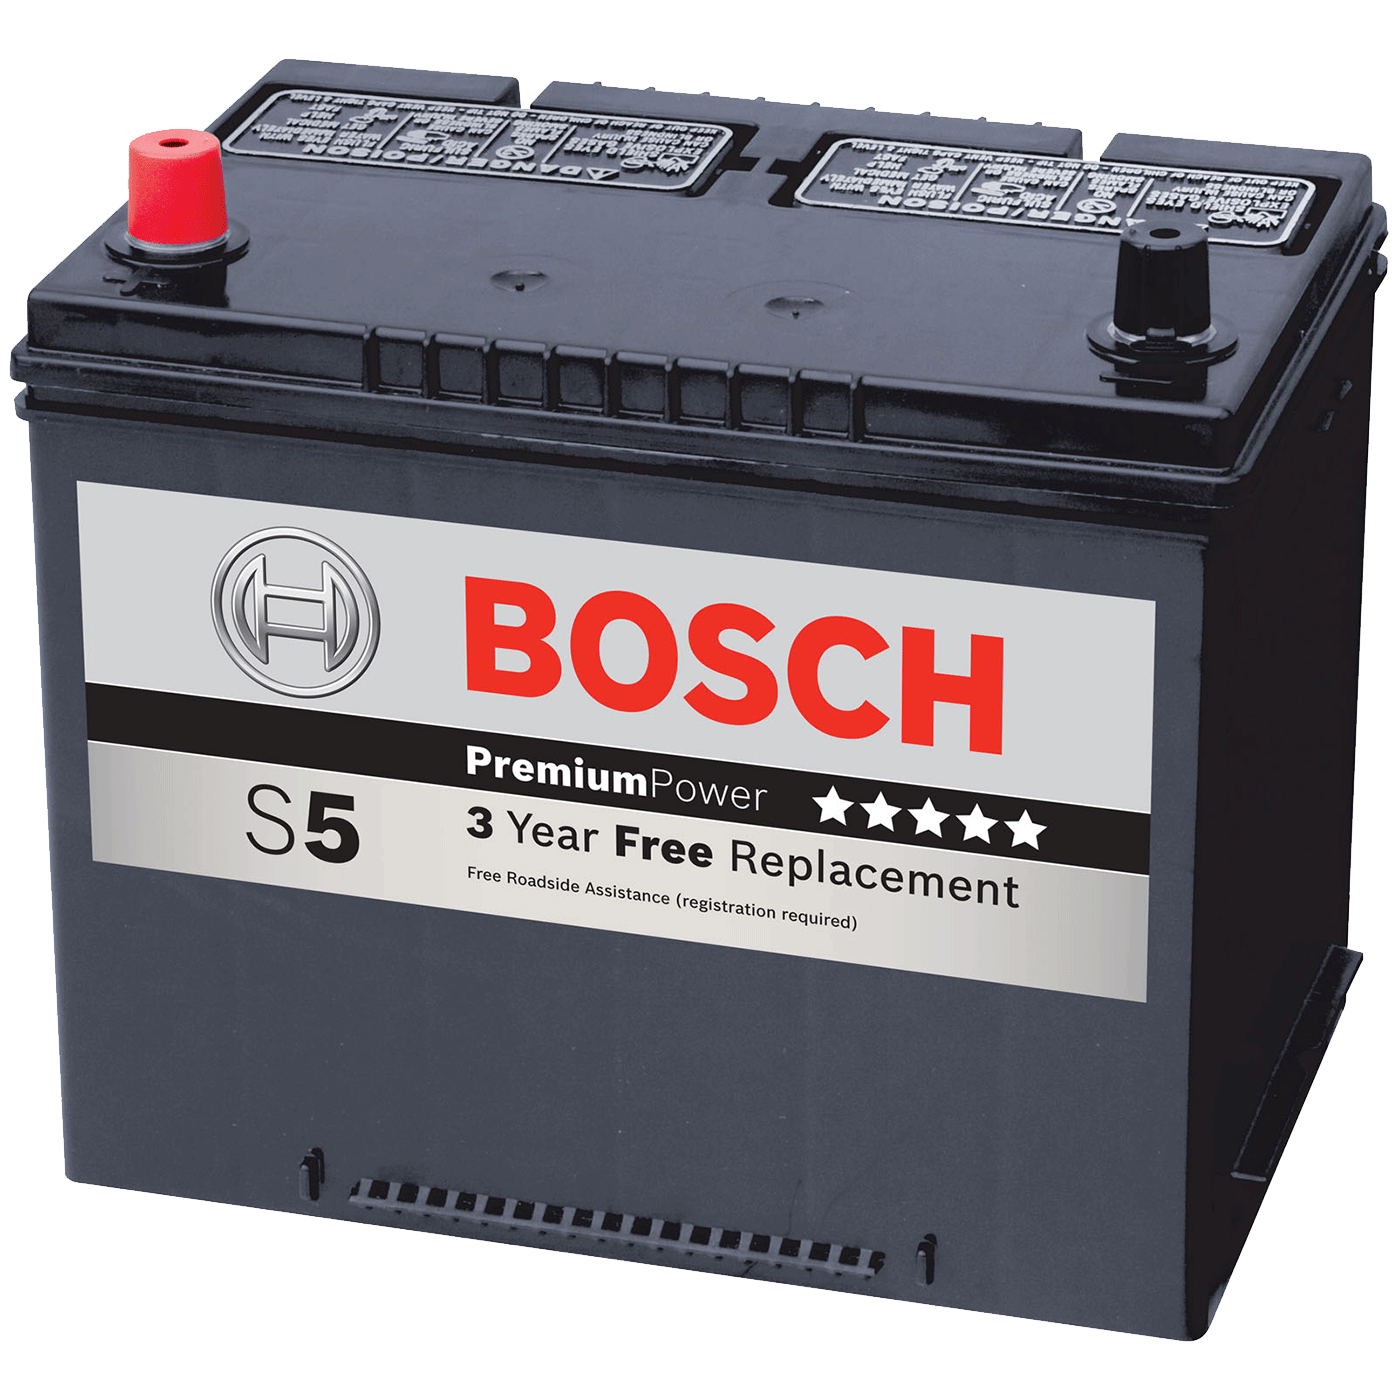 Instant Quotes And Costs On Battery Replacement Services